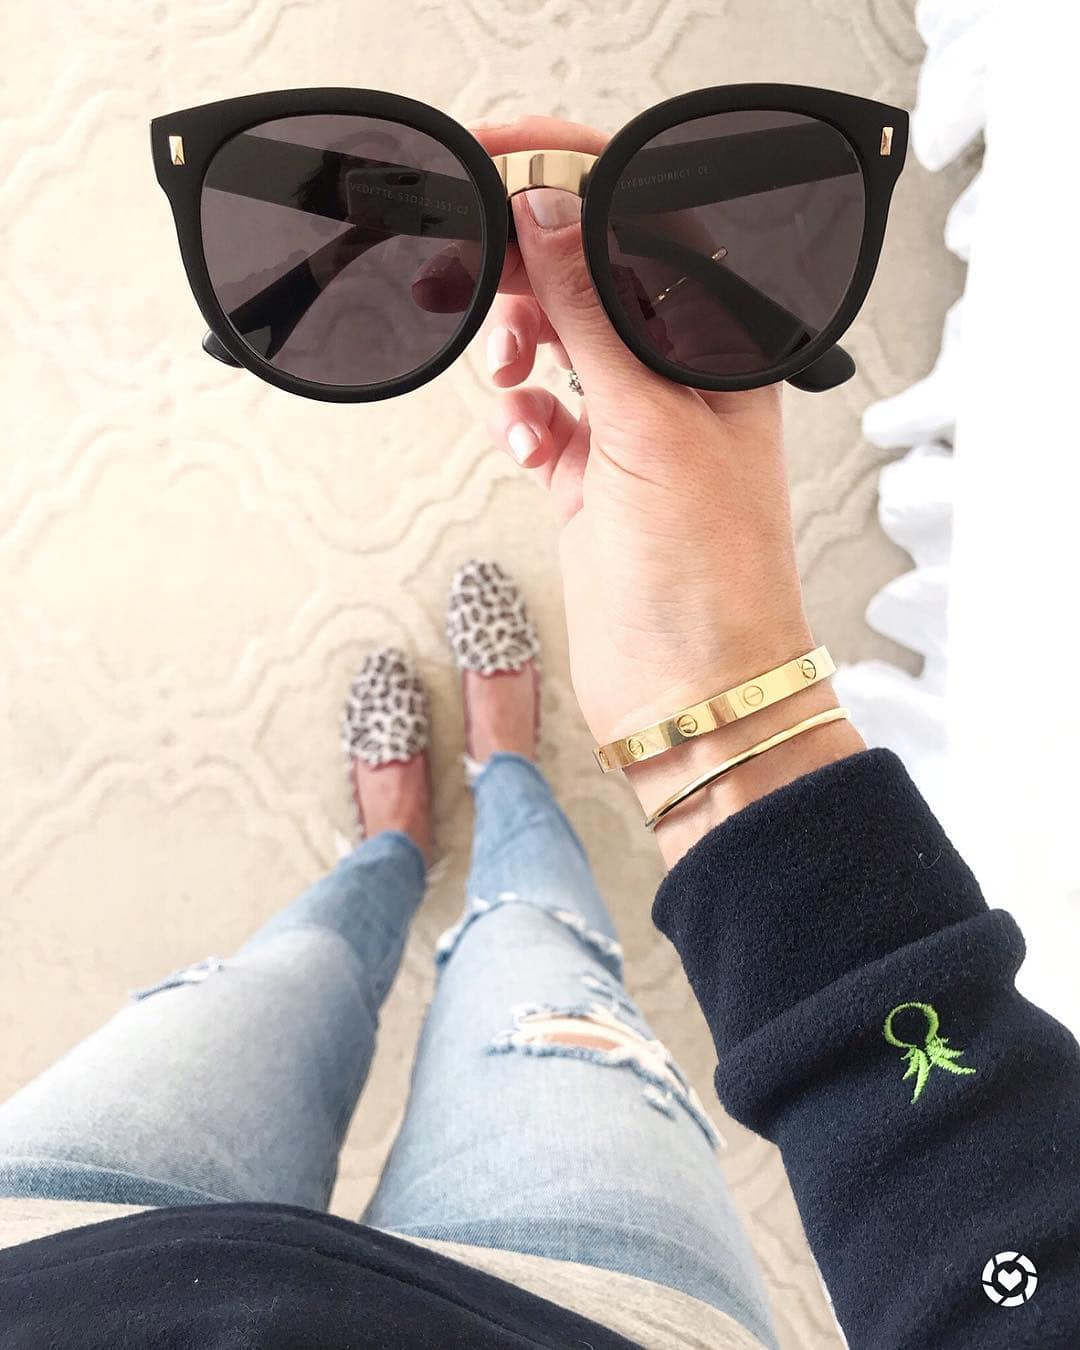 EyeBuyDirect: Get 30% Off Sunglasses + Free Shipping On Orders $99+